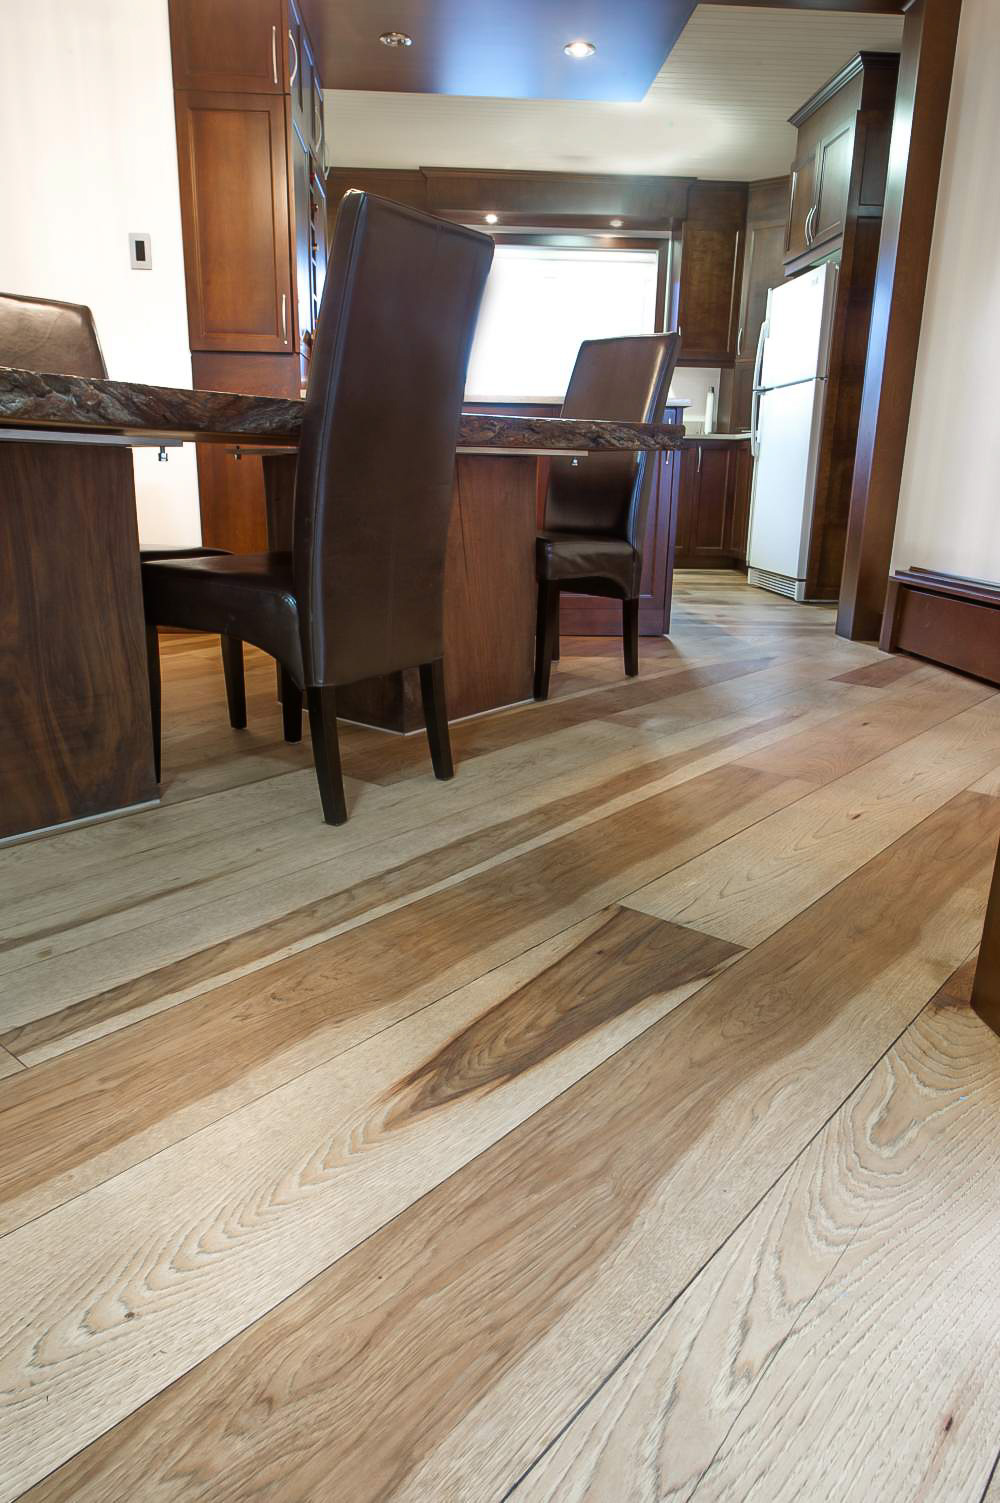 8 inch wide hickory plank floors.jpg